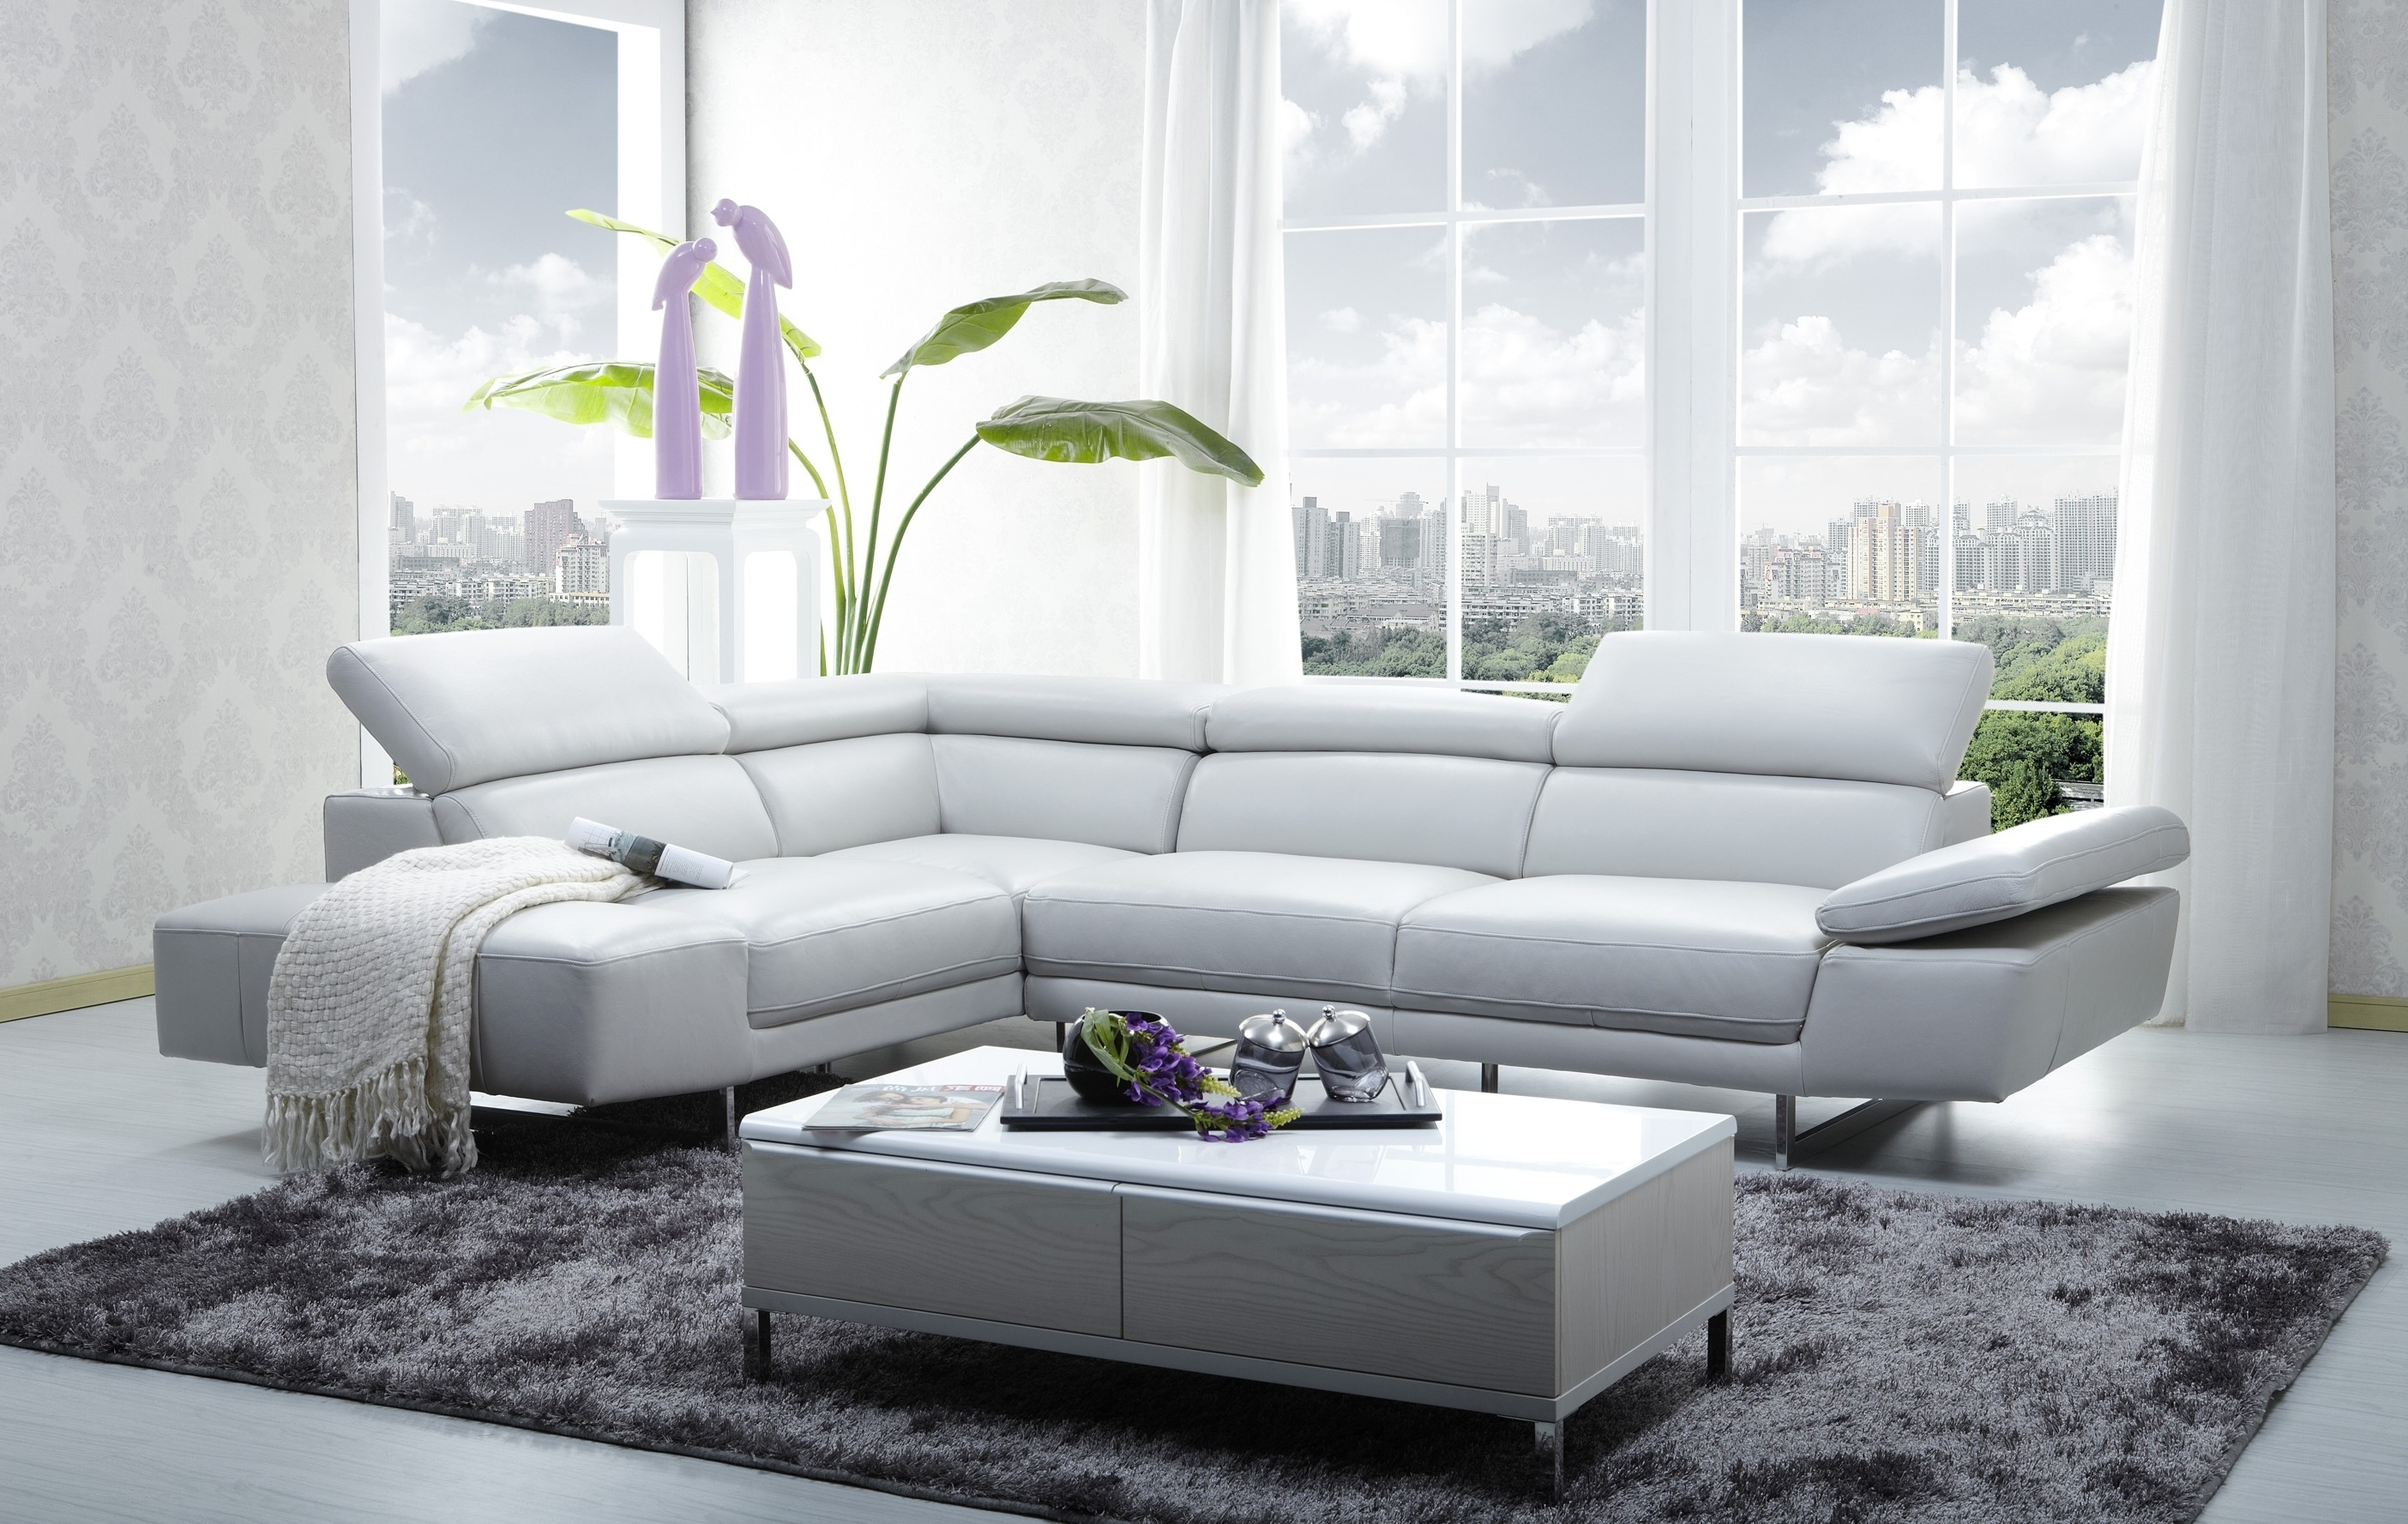 1717 Italian Leather Modern Sectional Sofa With Regard To Newest Modern Sofas (View 4 of 20)